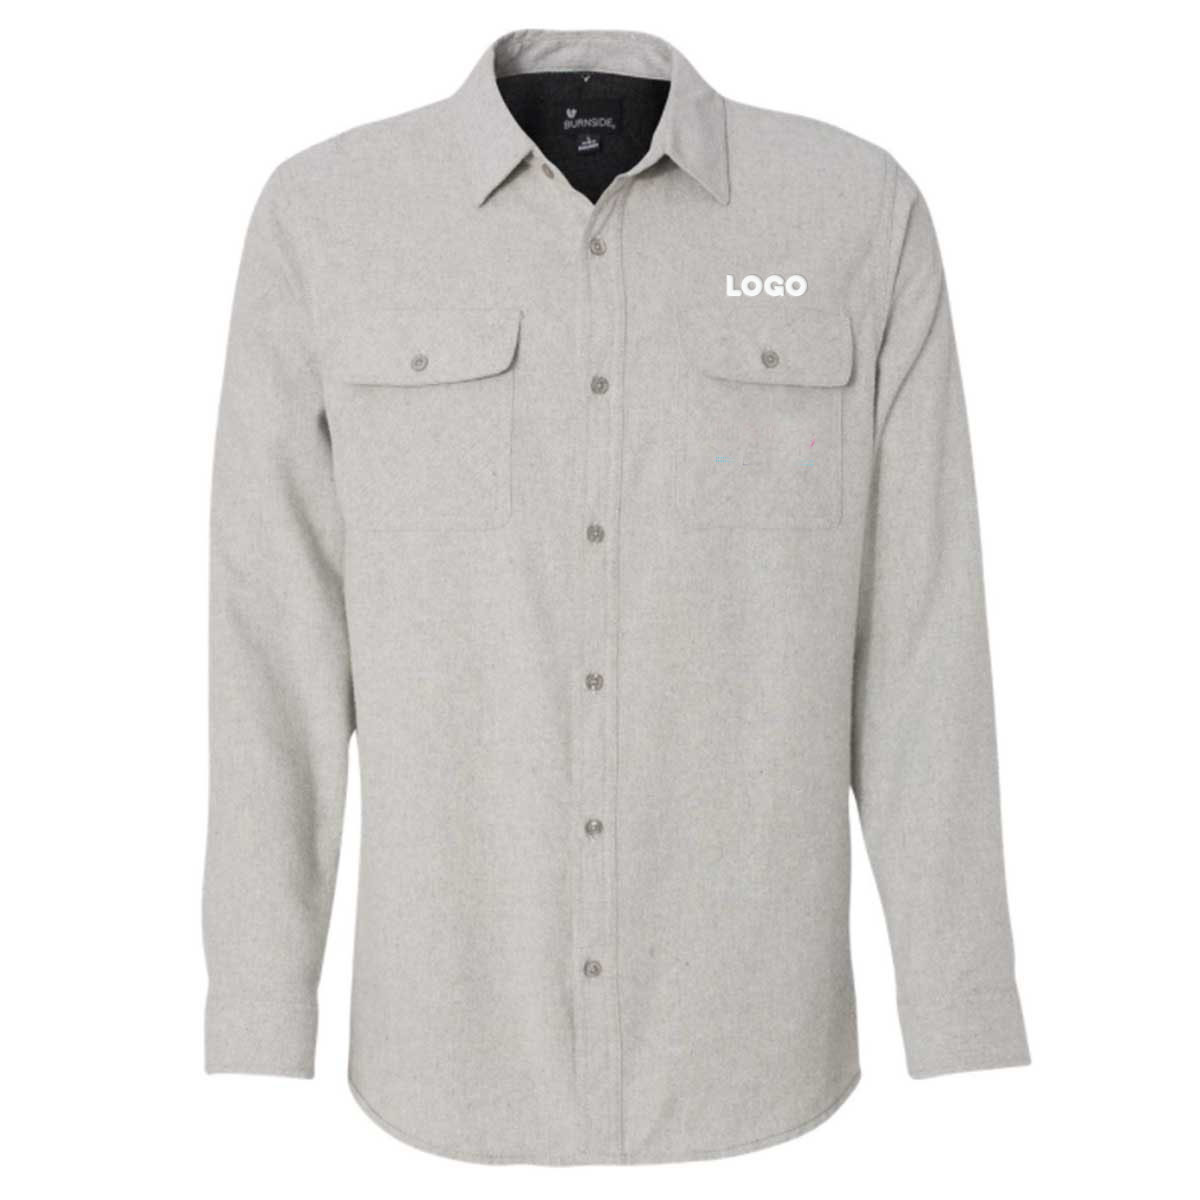 137903 flannel long sleeve shirt embroidered up to 4k stitches one location